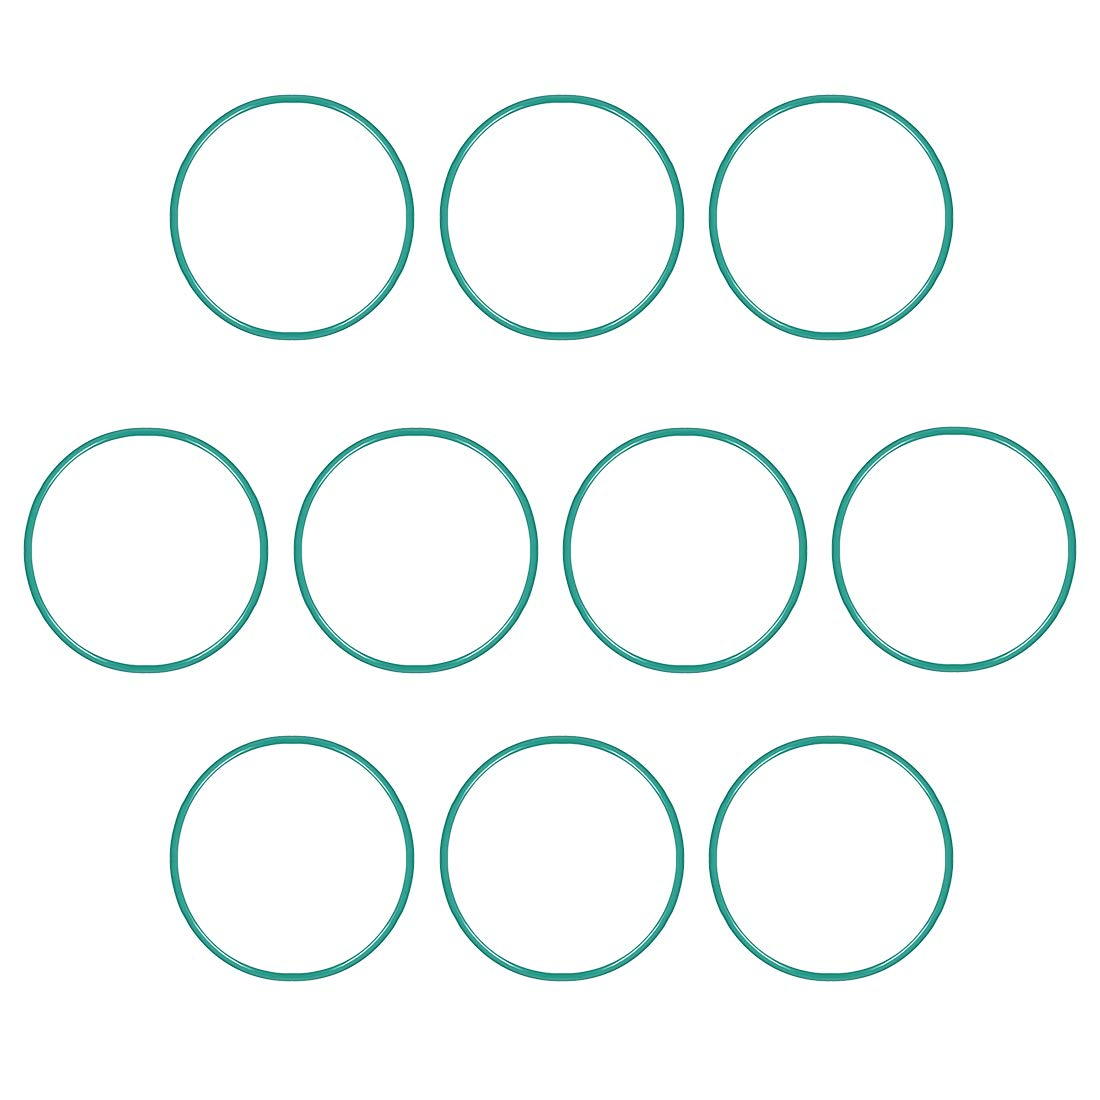 uxcell Fluorine Rubber O-Rings, 53mm OD 49.2mm ID 1.9mm Width FKM Seal Gasket for Vehicle Machinery Plumbing, Green, Pack of 10